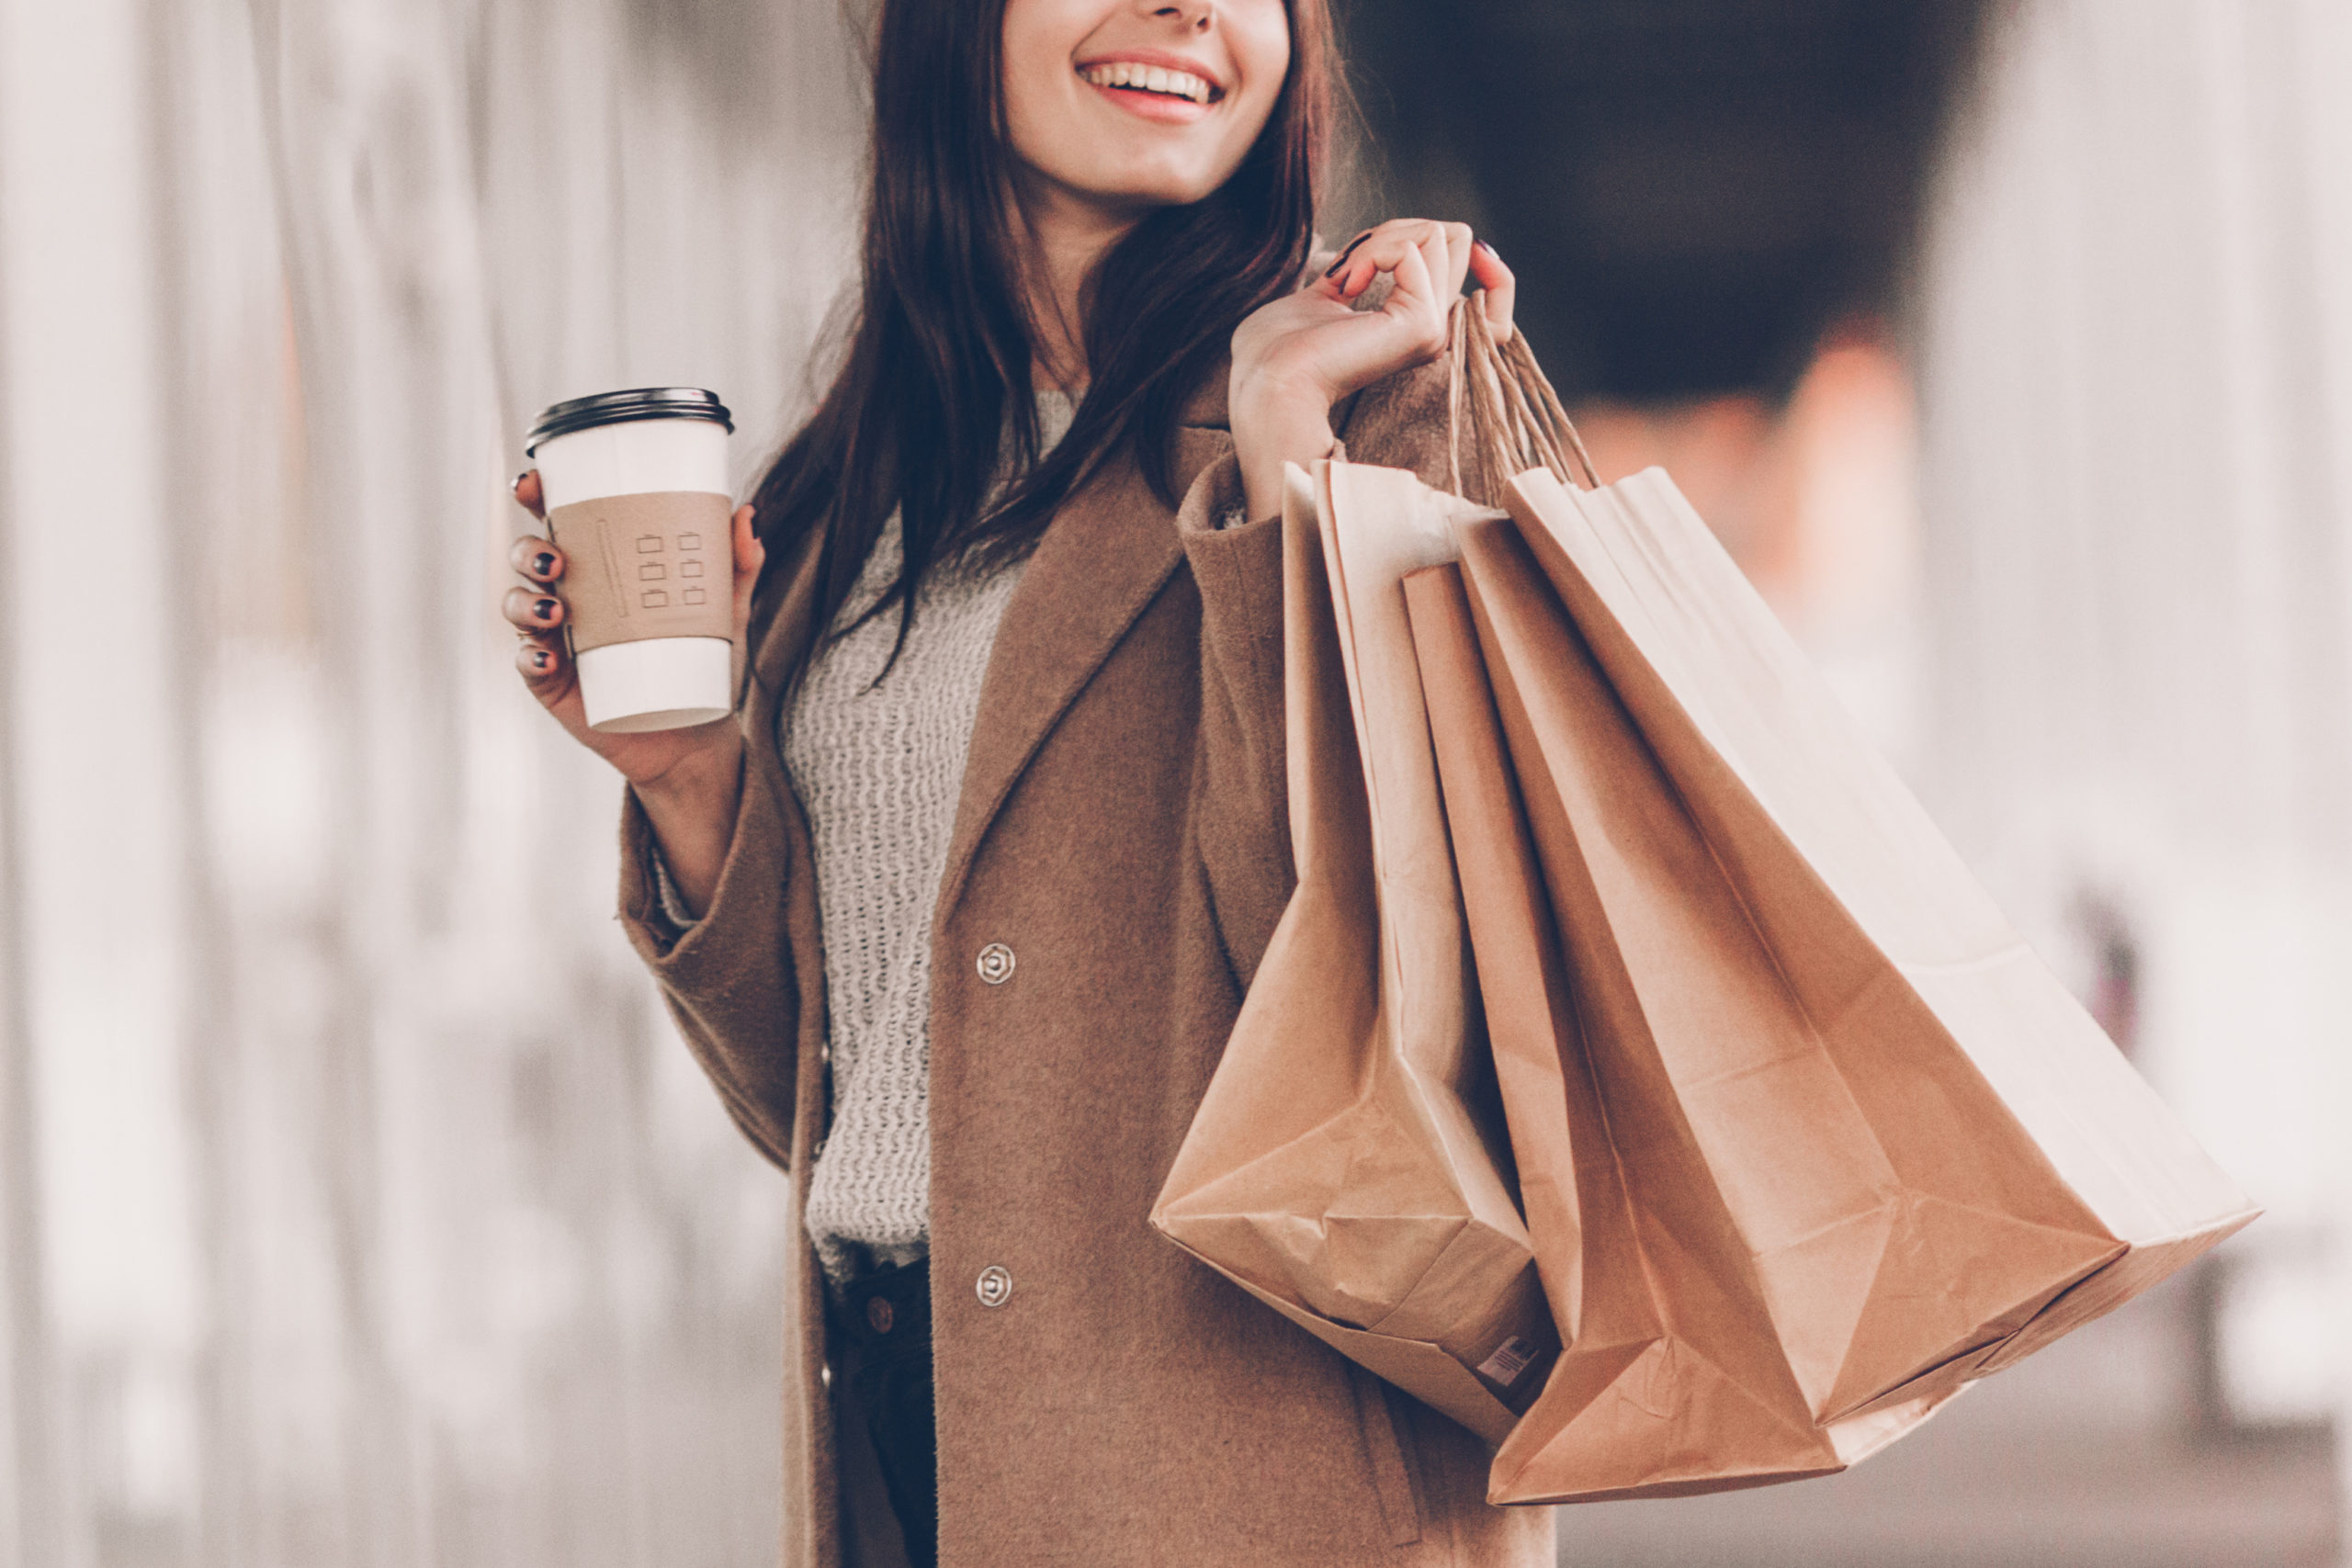 woman with brown hair wearing a coat and sweater with a cup of to-go coffee and shopping bags